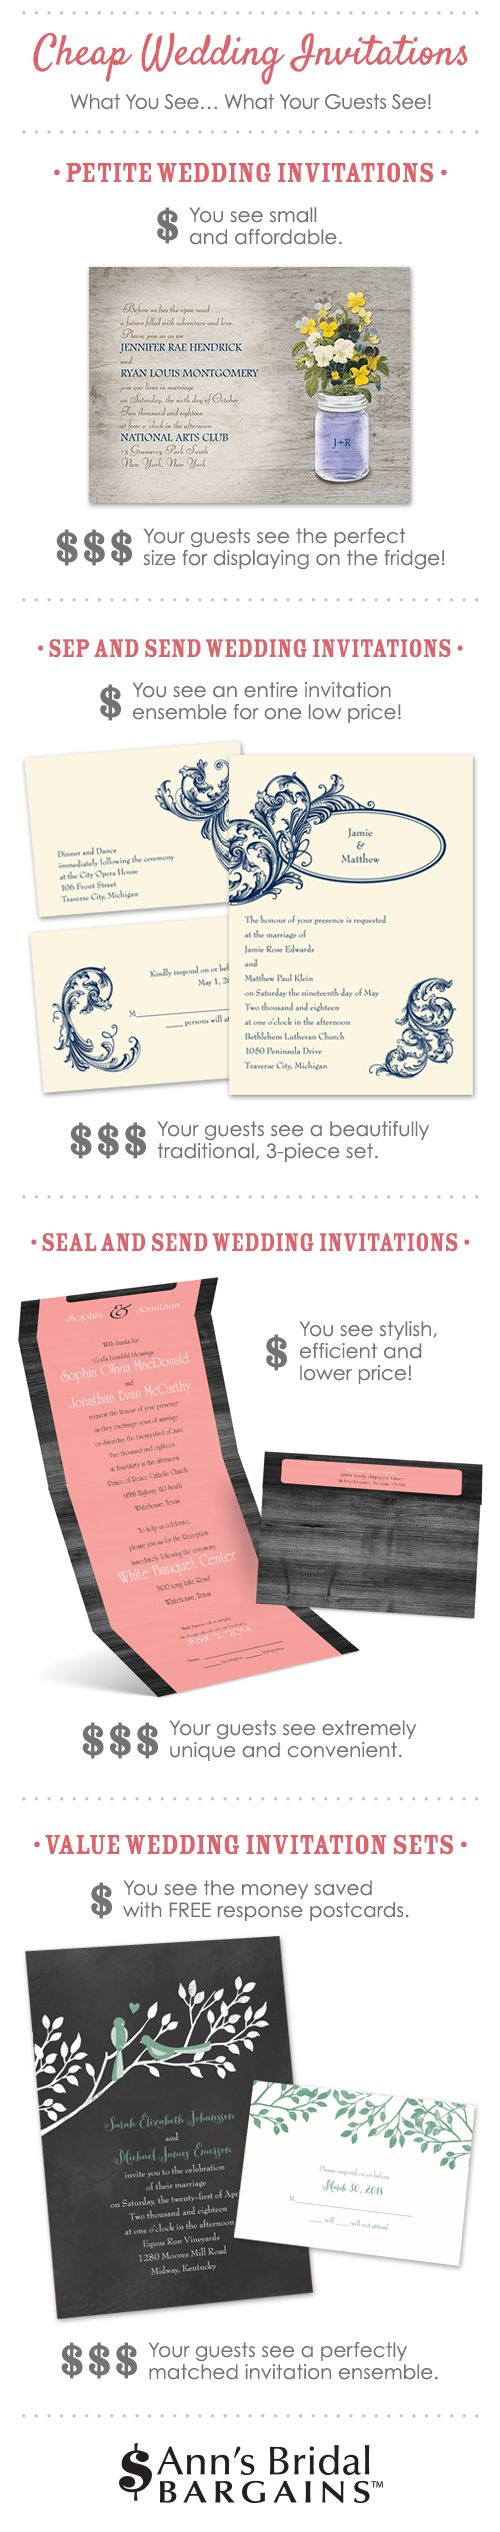 best price wedding invitations%0A Types of Cheap Wedding Invitations  What You See vs  What Your Guests See